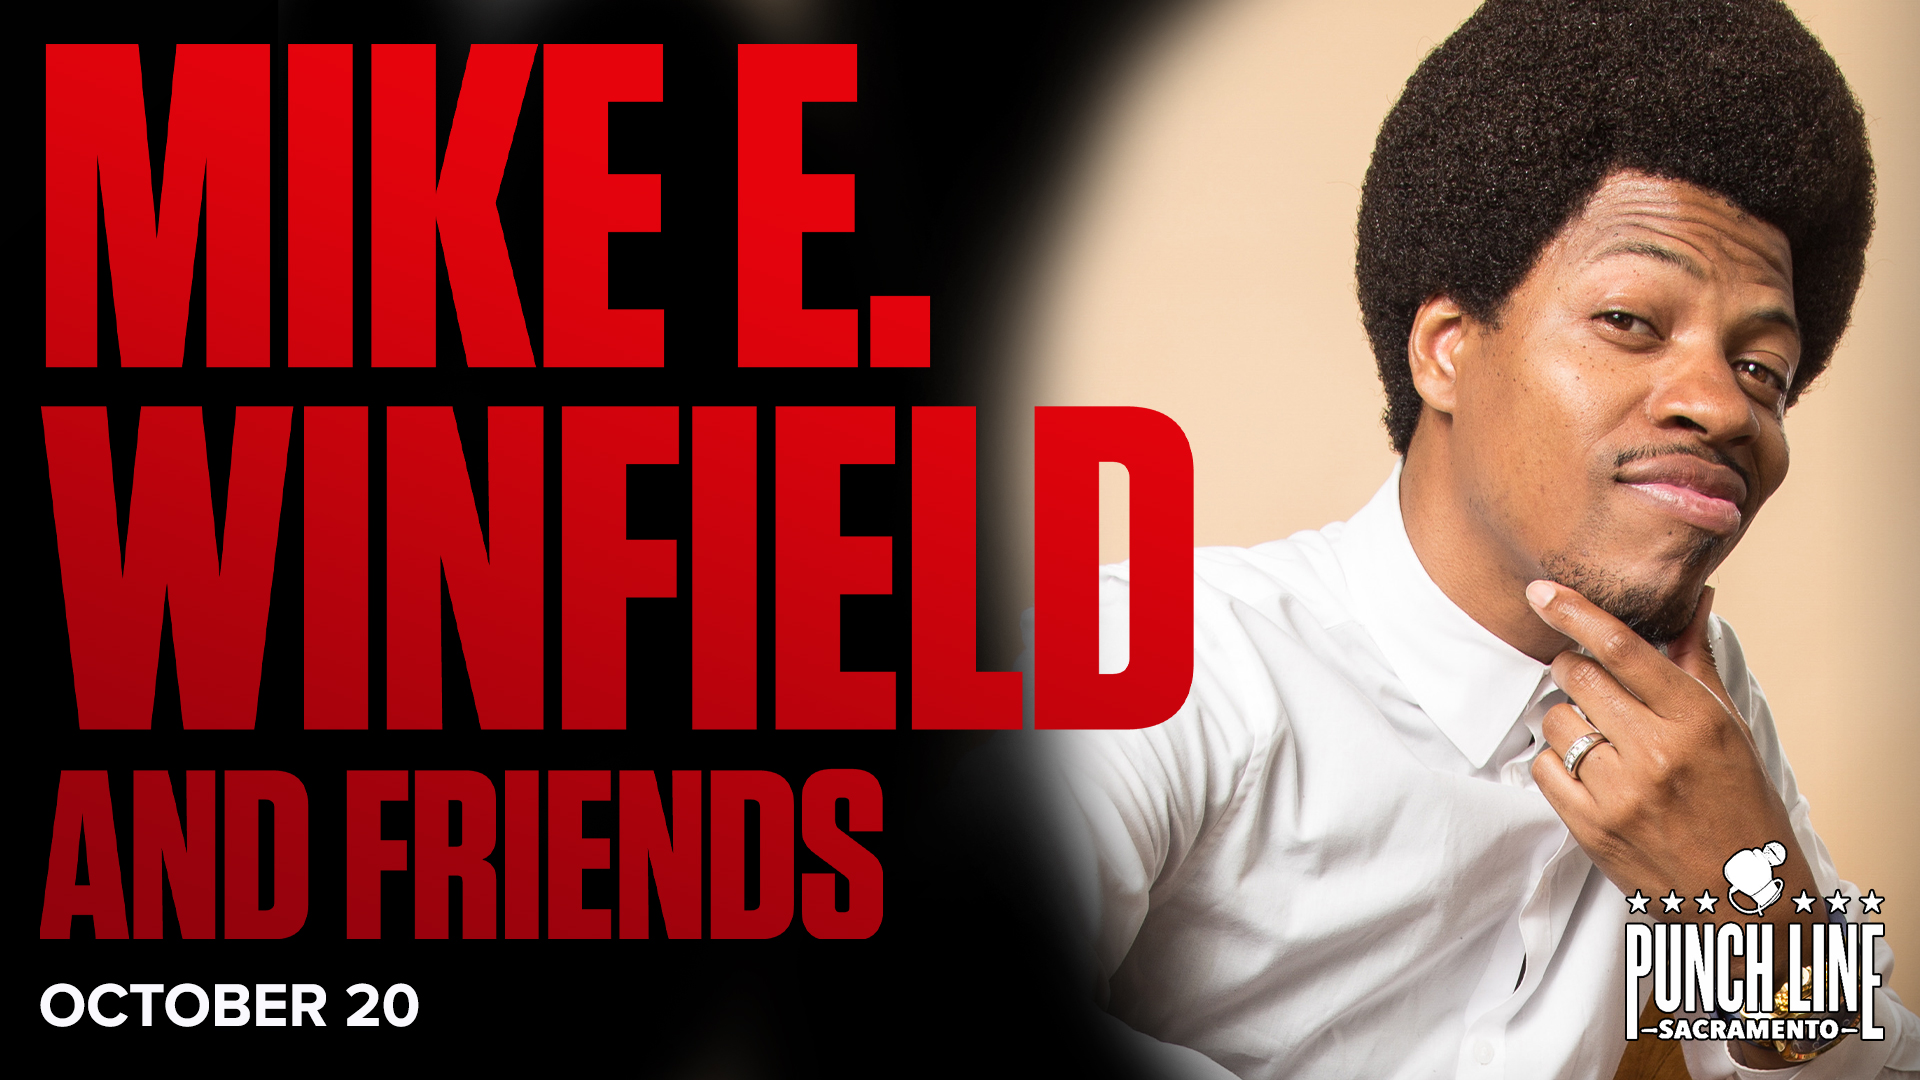 Mike E. Winfield and Friends